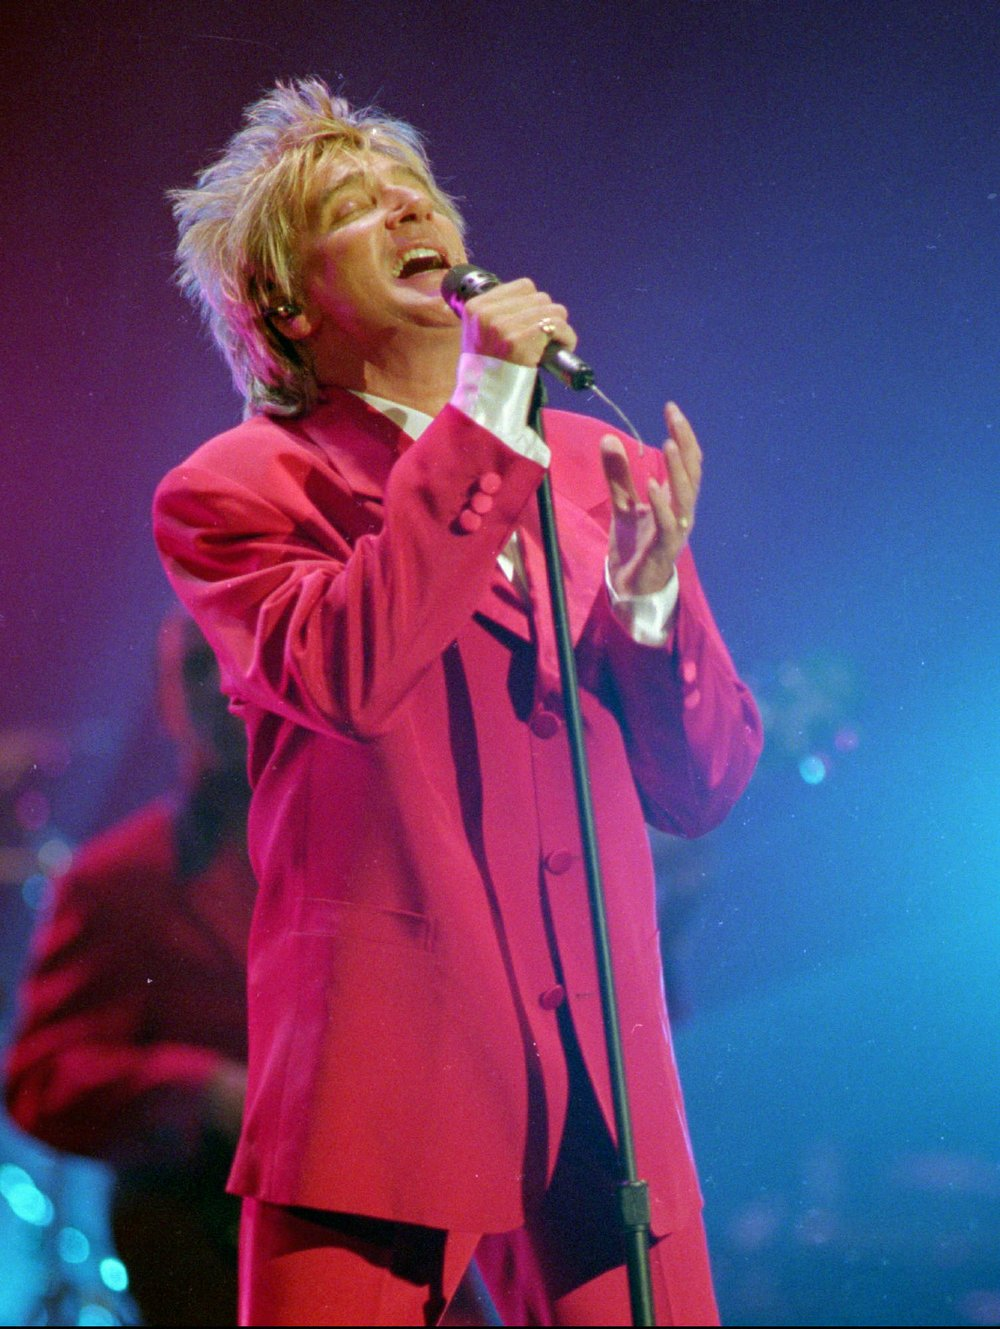 Rod Stewart performs during the 21st American Music Awards at the Shrine Auditorium in Los Angeles in 1994.  (AP file photo/Mark. J. Terrill)